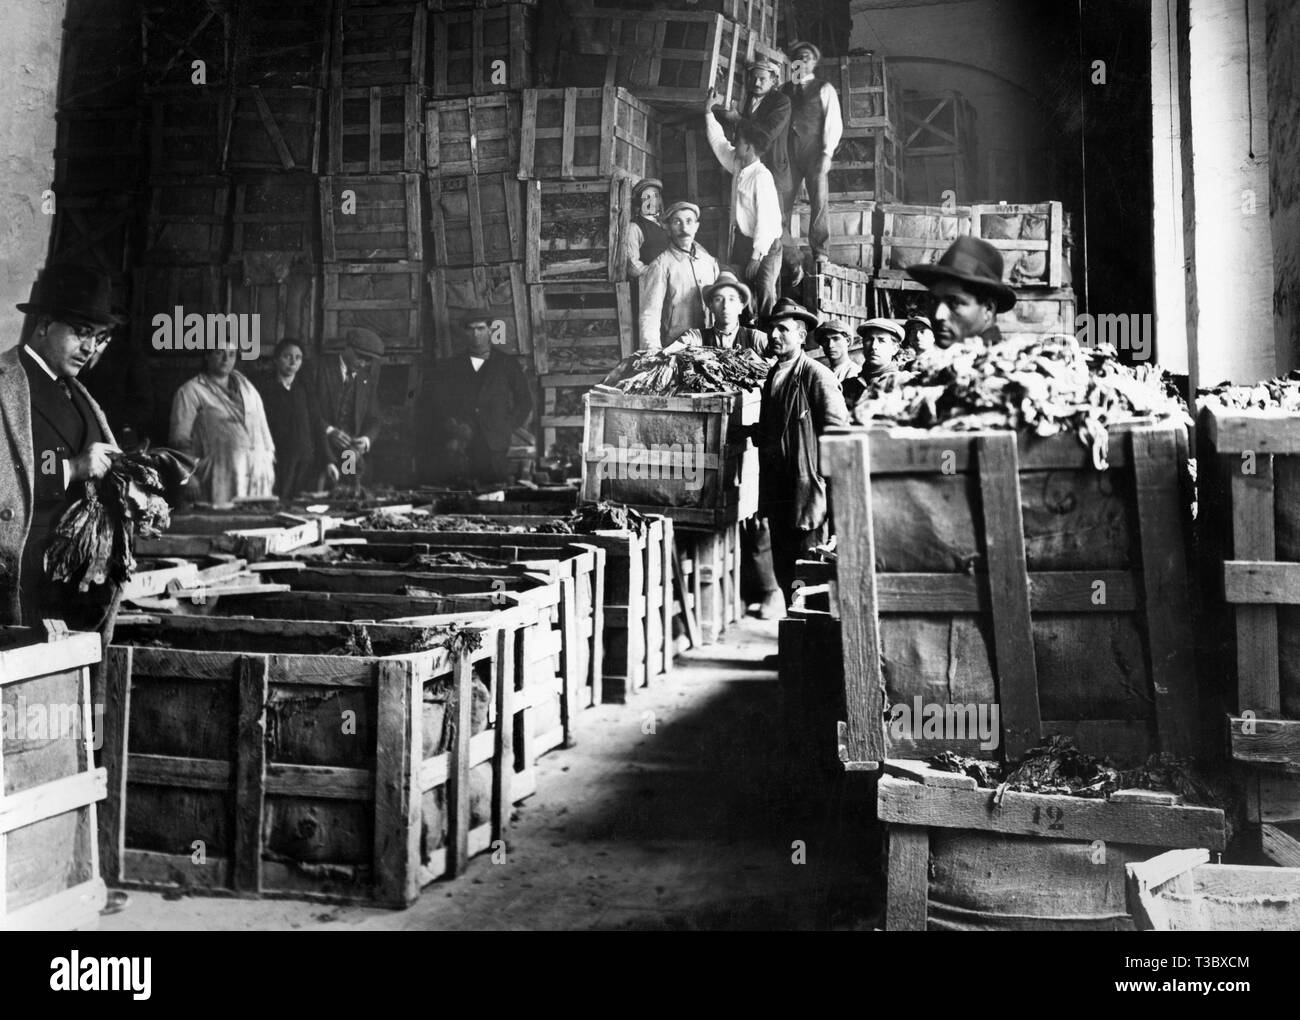 industry, 1920-1930 - Stock Image